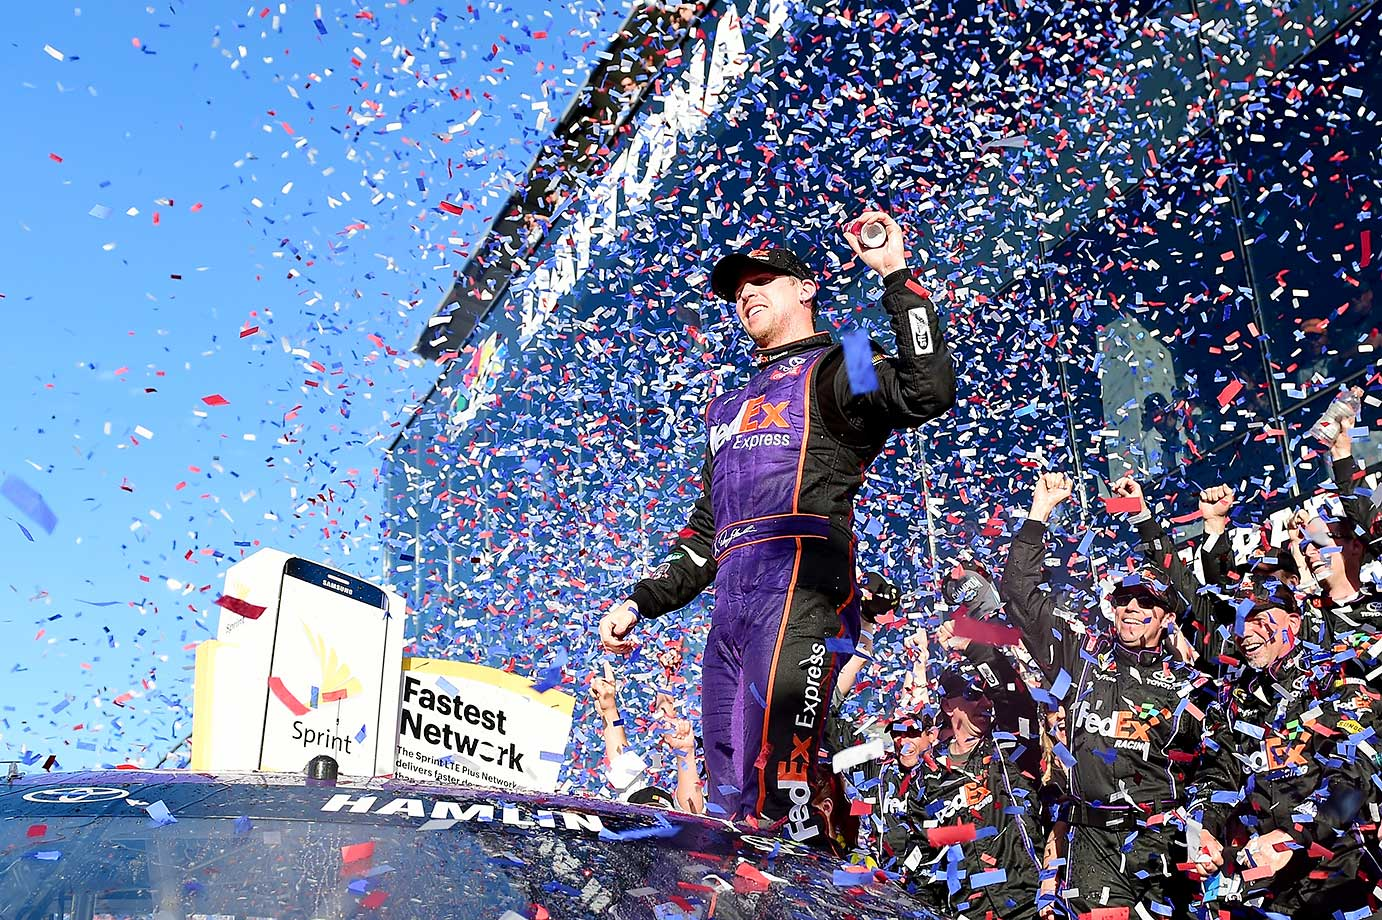 Denny Hamlin celebrates after winning his first Daytona 500, a race that had the closest finish in Daytona 500 history.